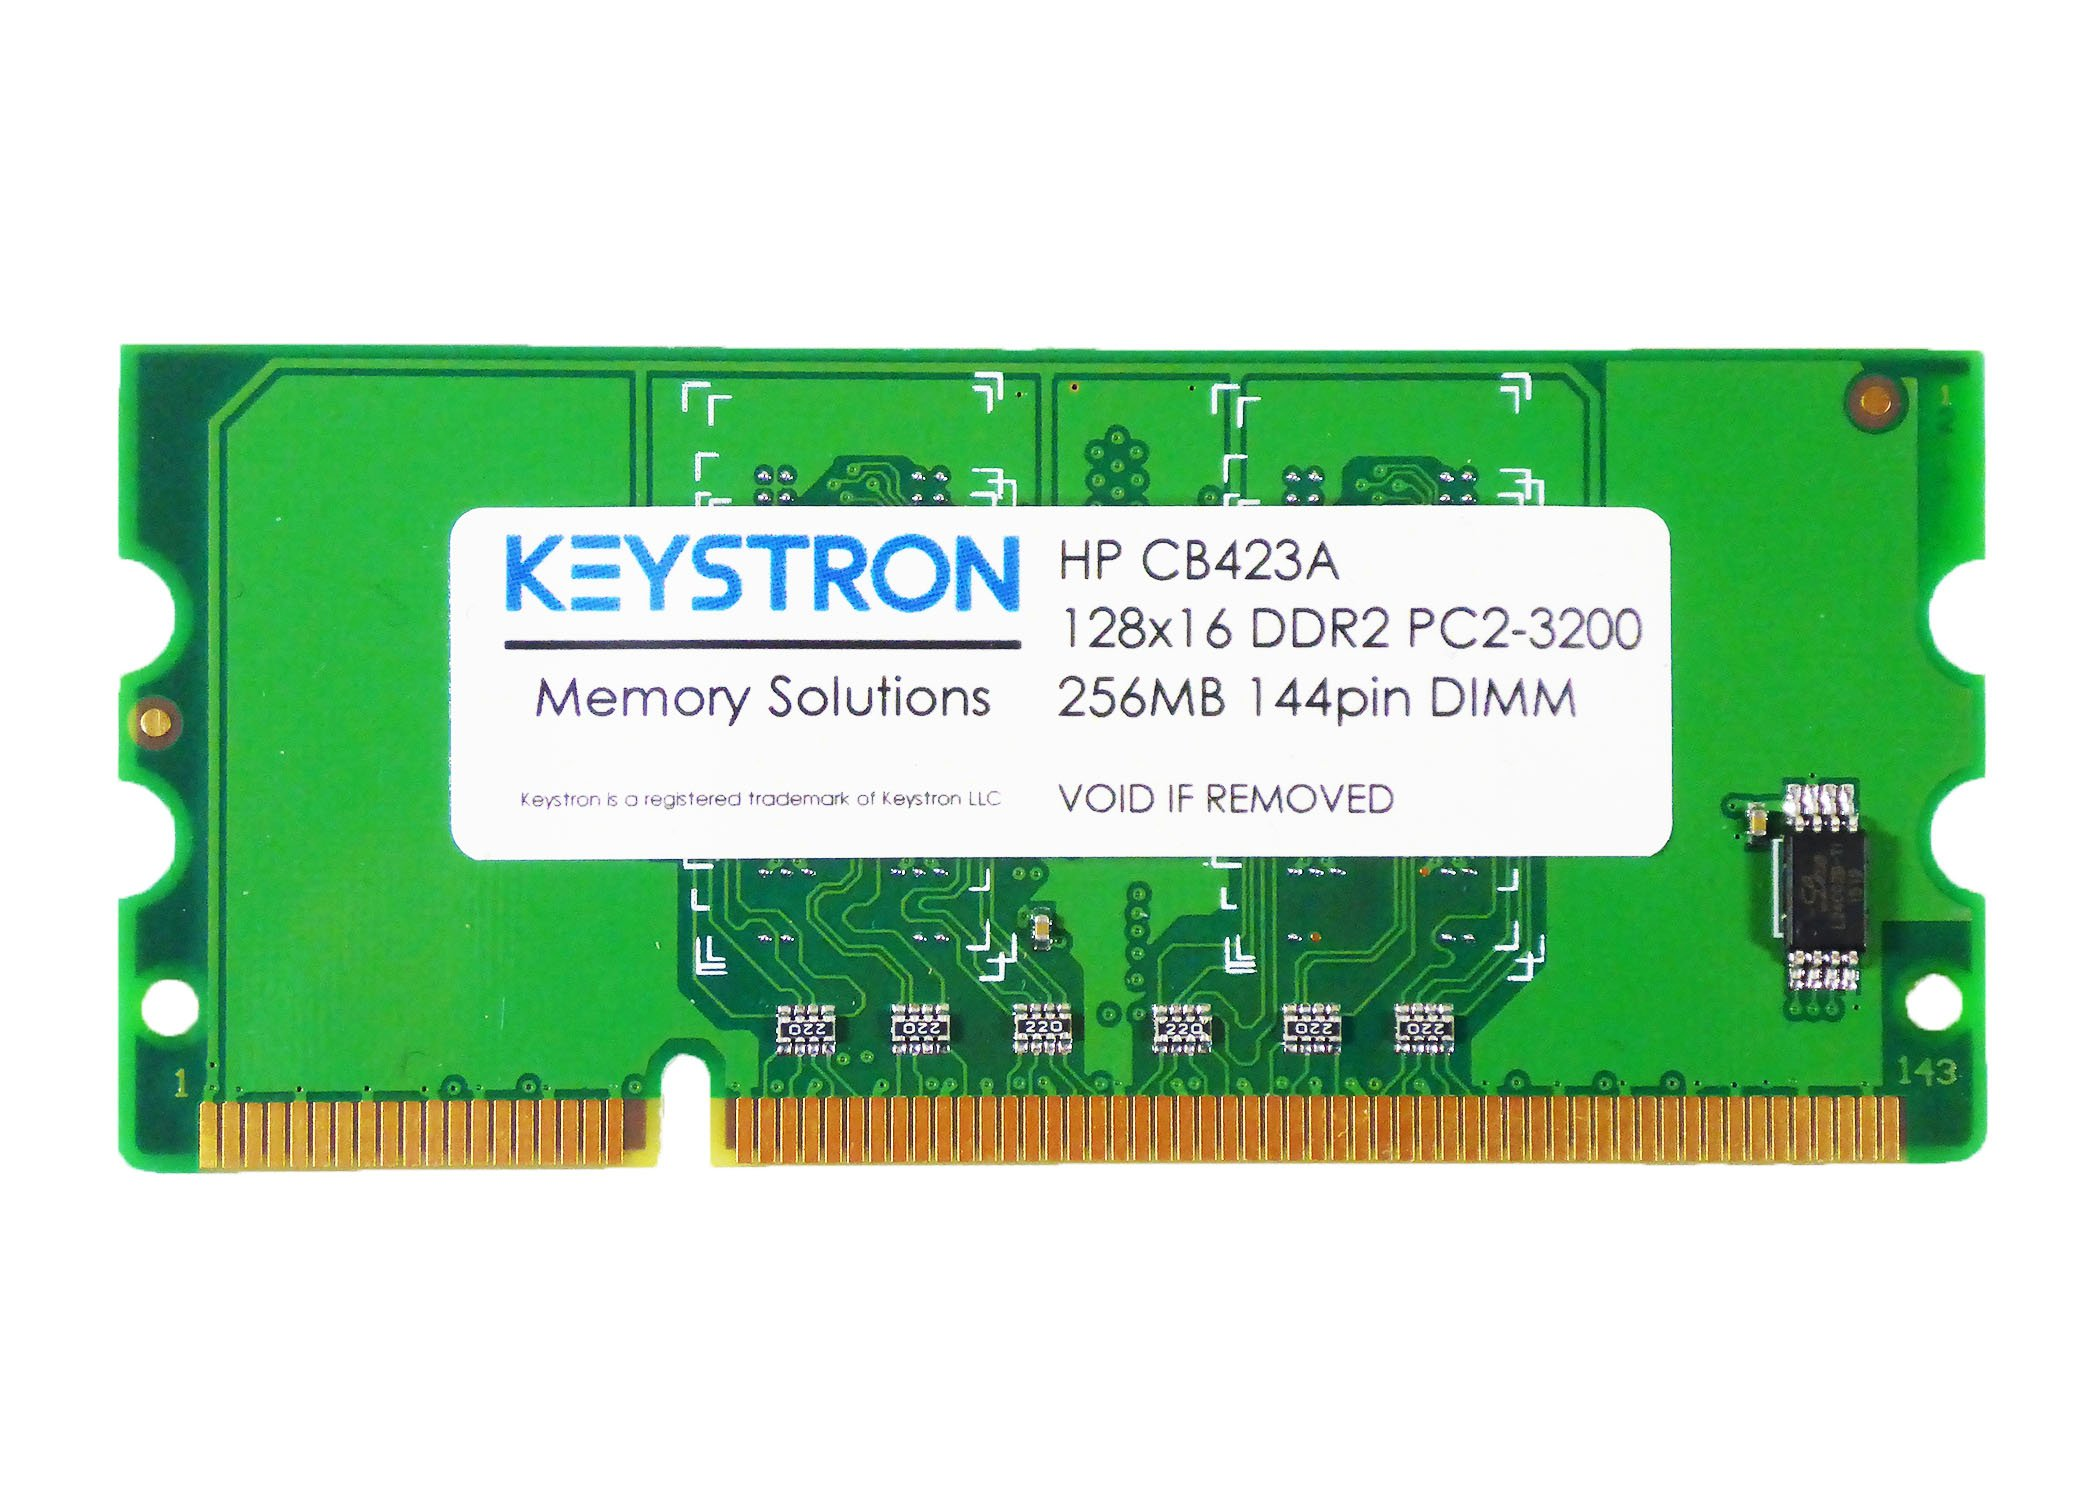 256MB Memory Upgrade for HP LaserJet Pro 400, M451dn, M451dw, M451nw Printer by Keystron